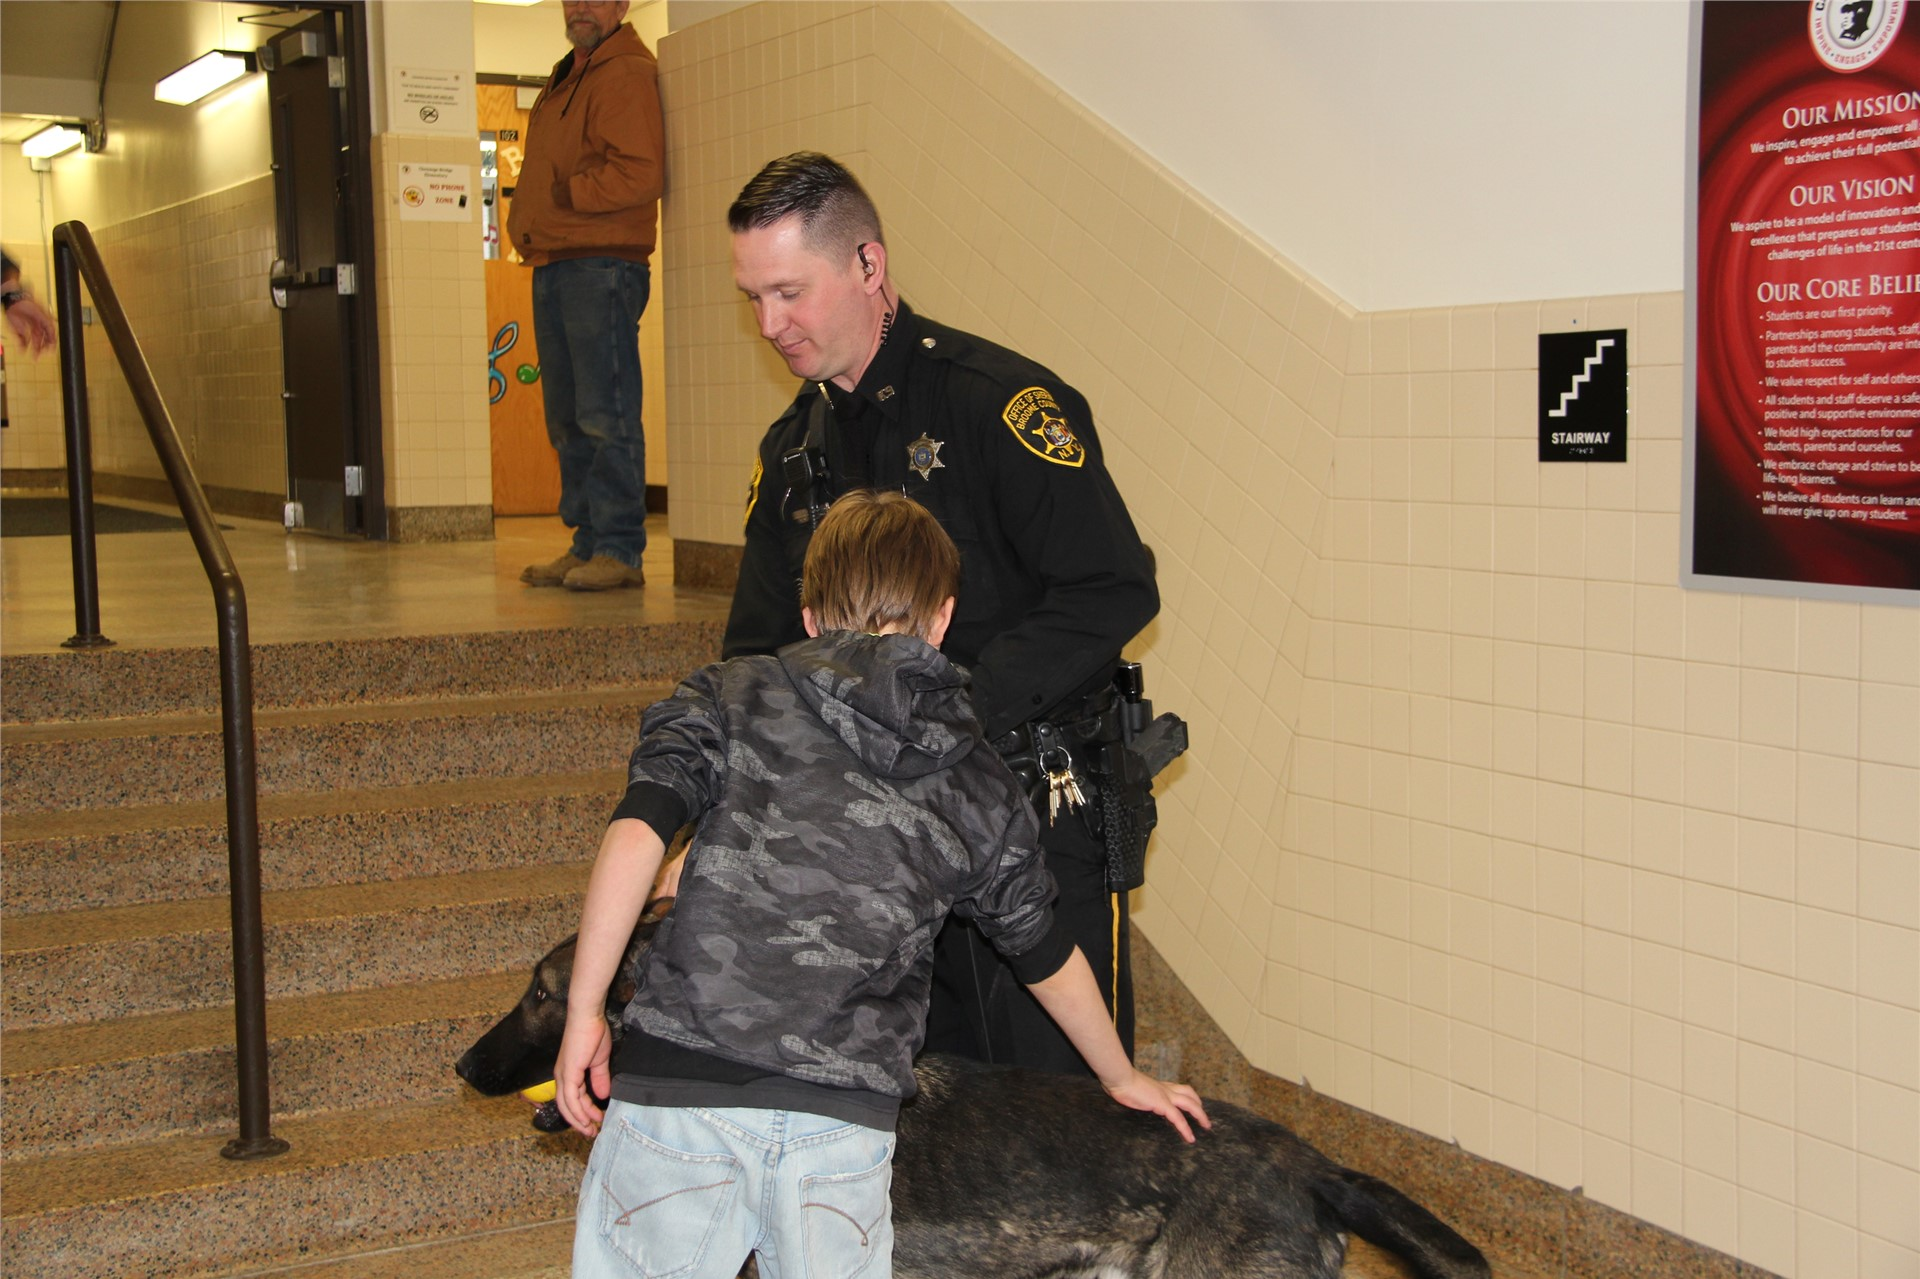 another student petting police dog